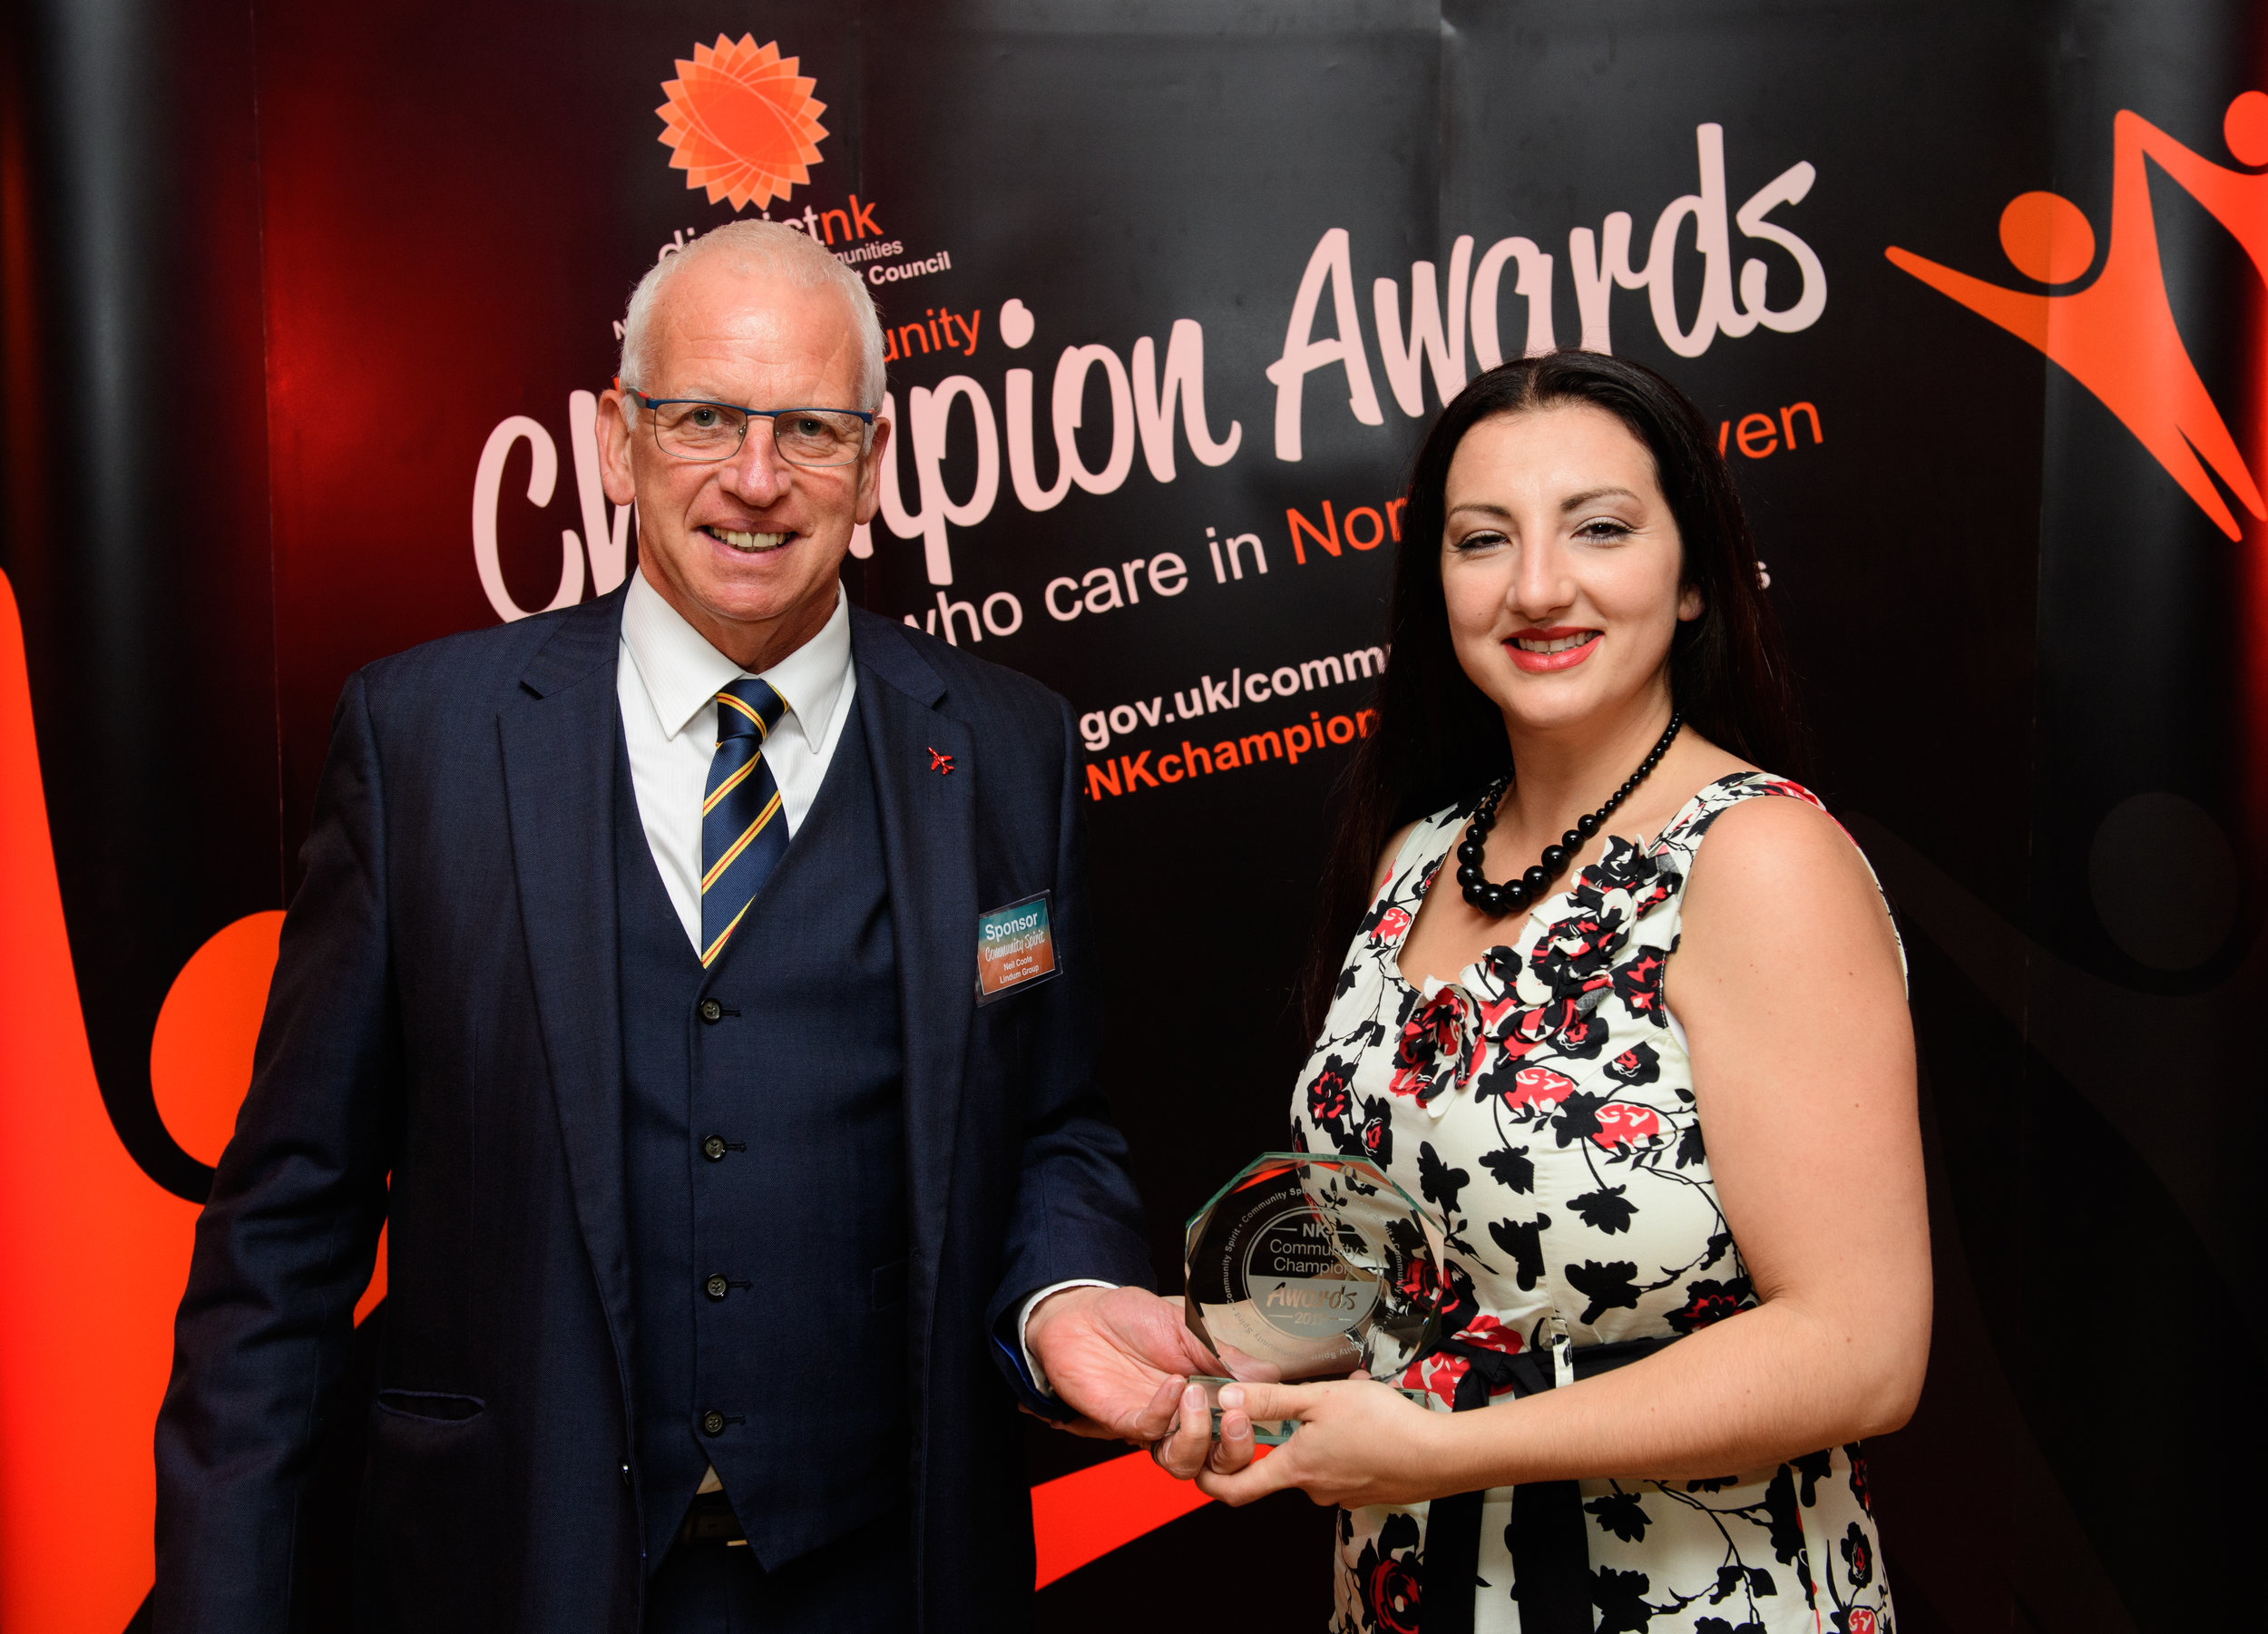 Neil Coote, Lindum Group Ltd presents the Community Spirit award to Vivien Banks.